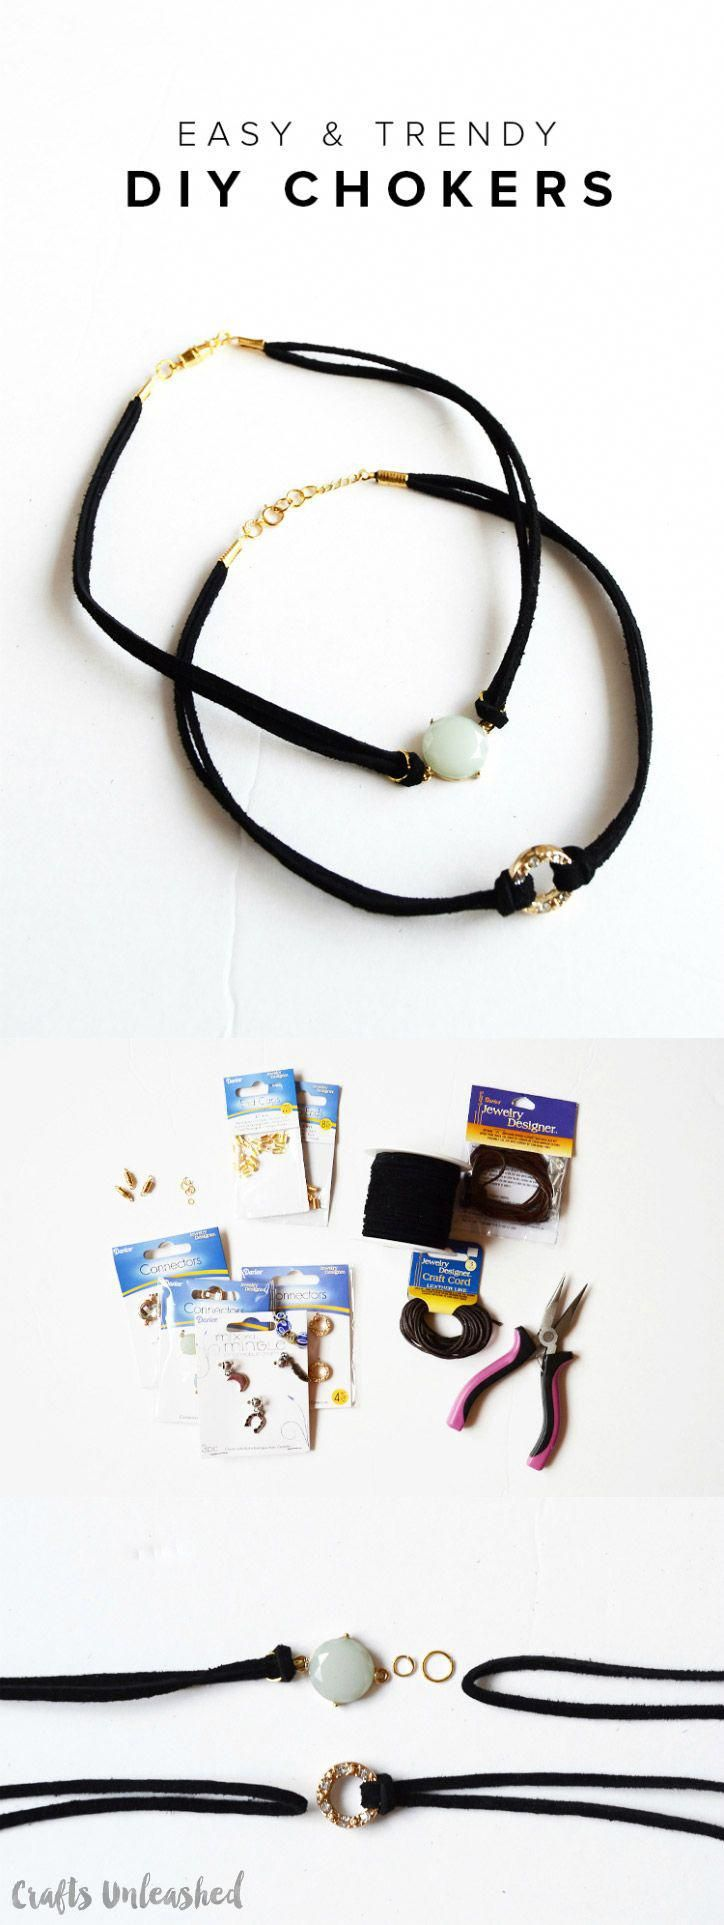 DIY Chokers: Easy & Trendy Jewelry Project - Consumer Crafts